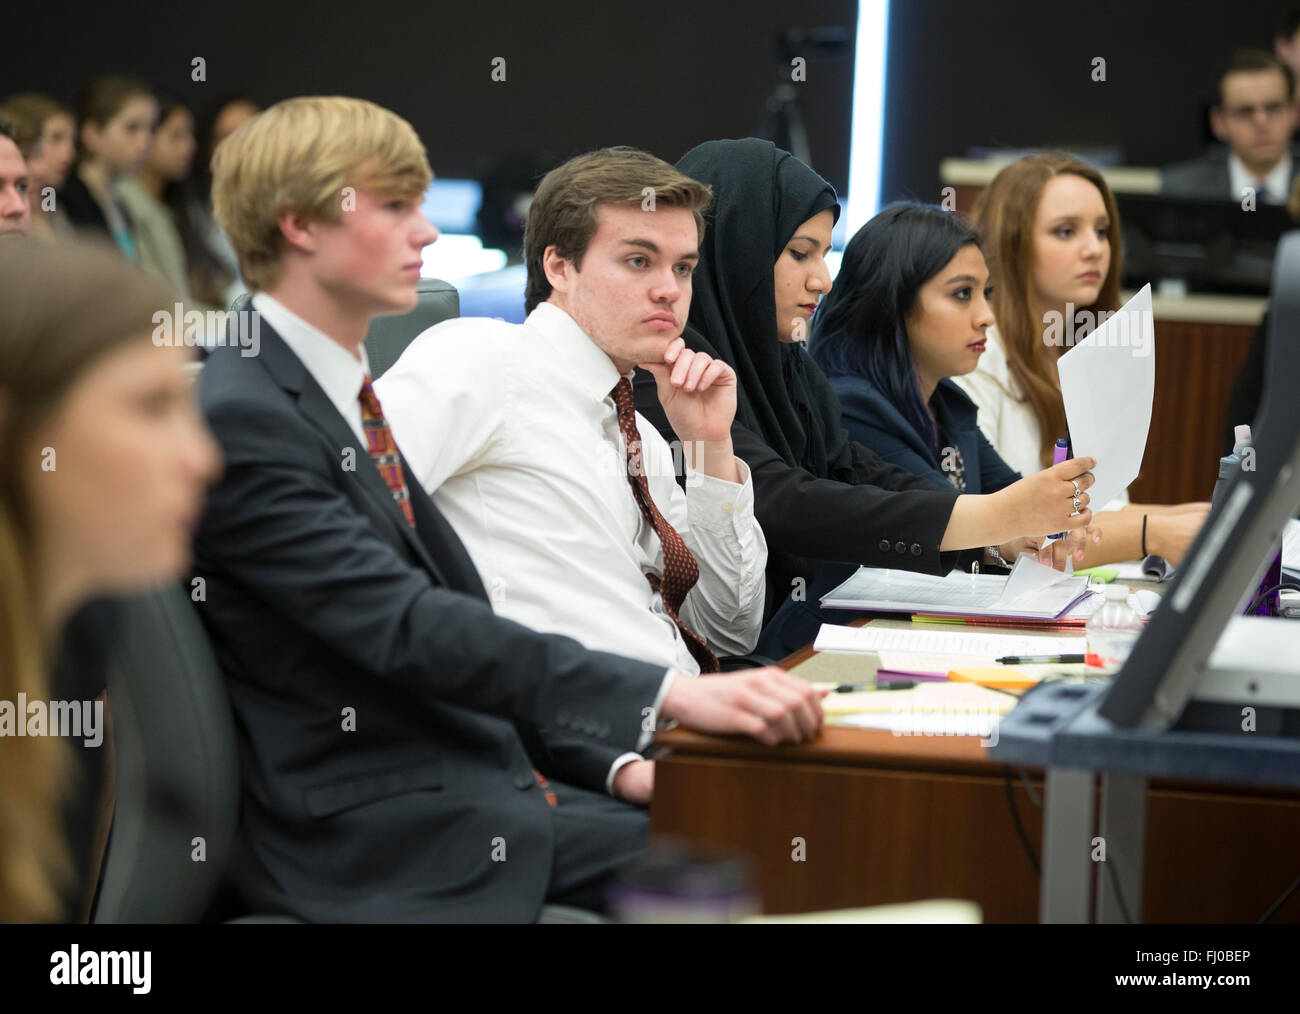 Teens posing as prosecuting attorneys in mock trial for high school students listen to proceedings in county courtroom - Stock Image